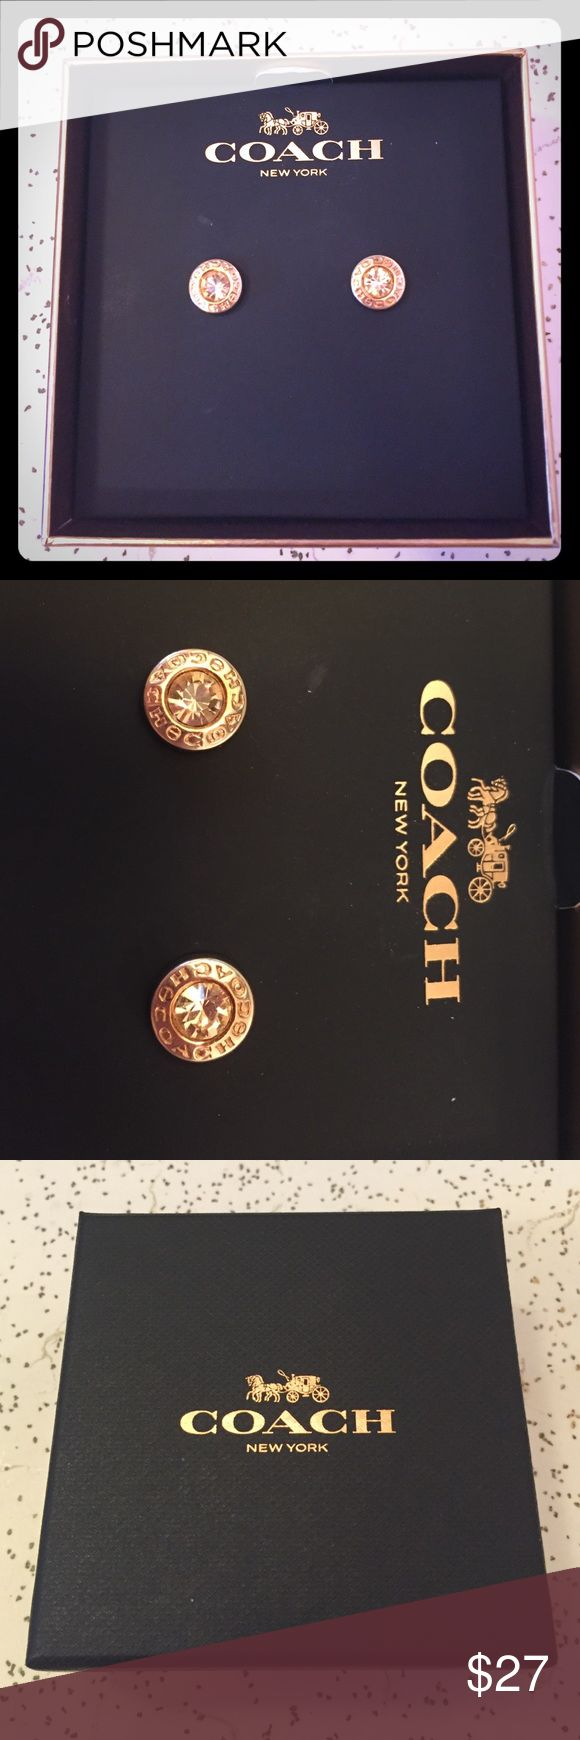 Rose Gold Colored Coach Earrings EUC Coach earrings. Comes with original box. Coach Jewelry Earrings